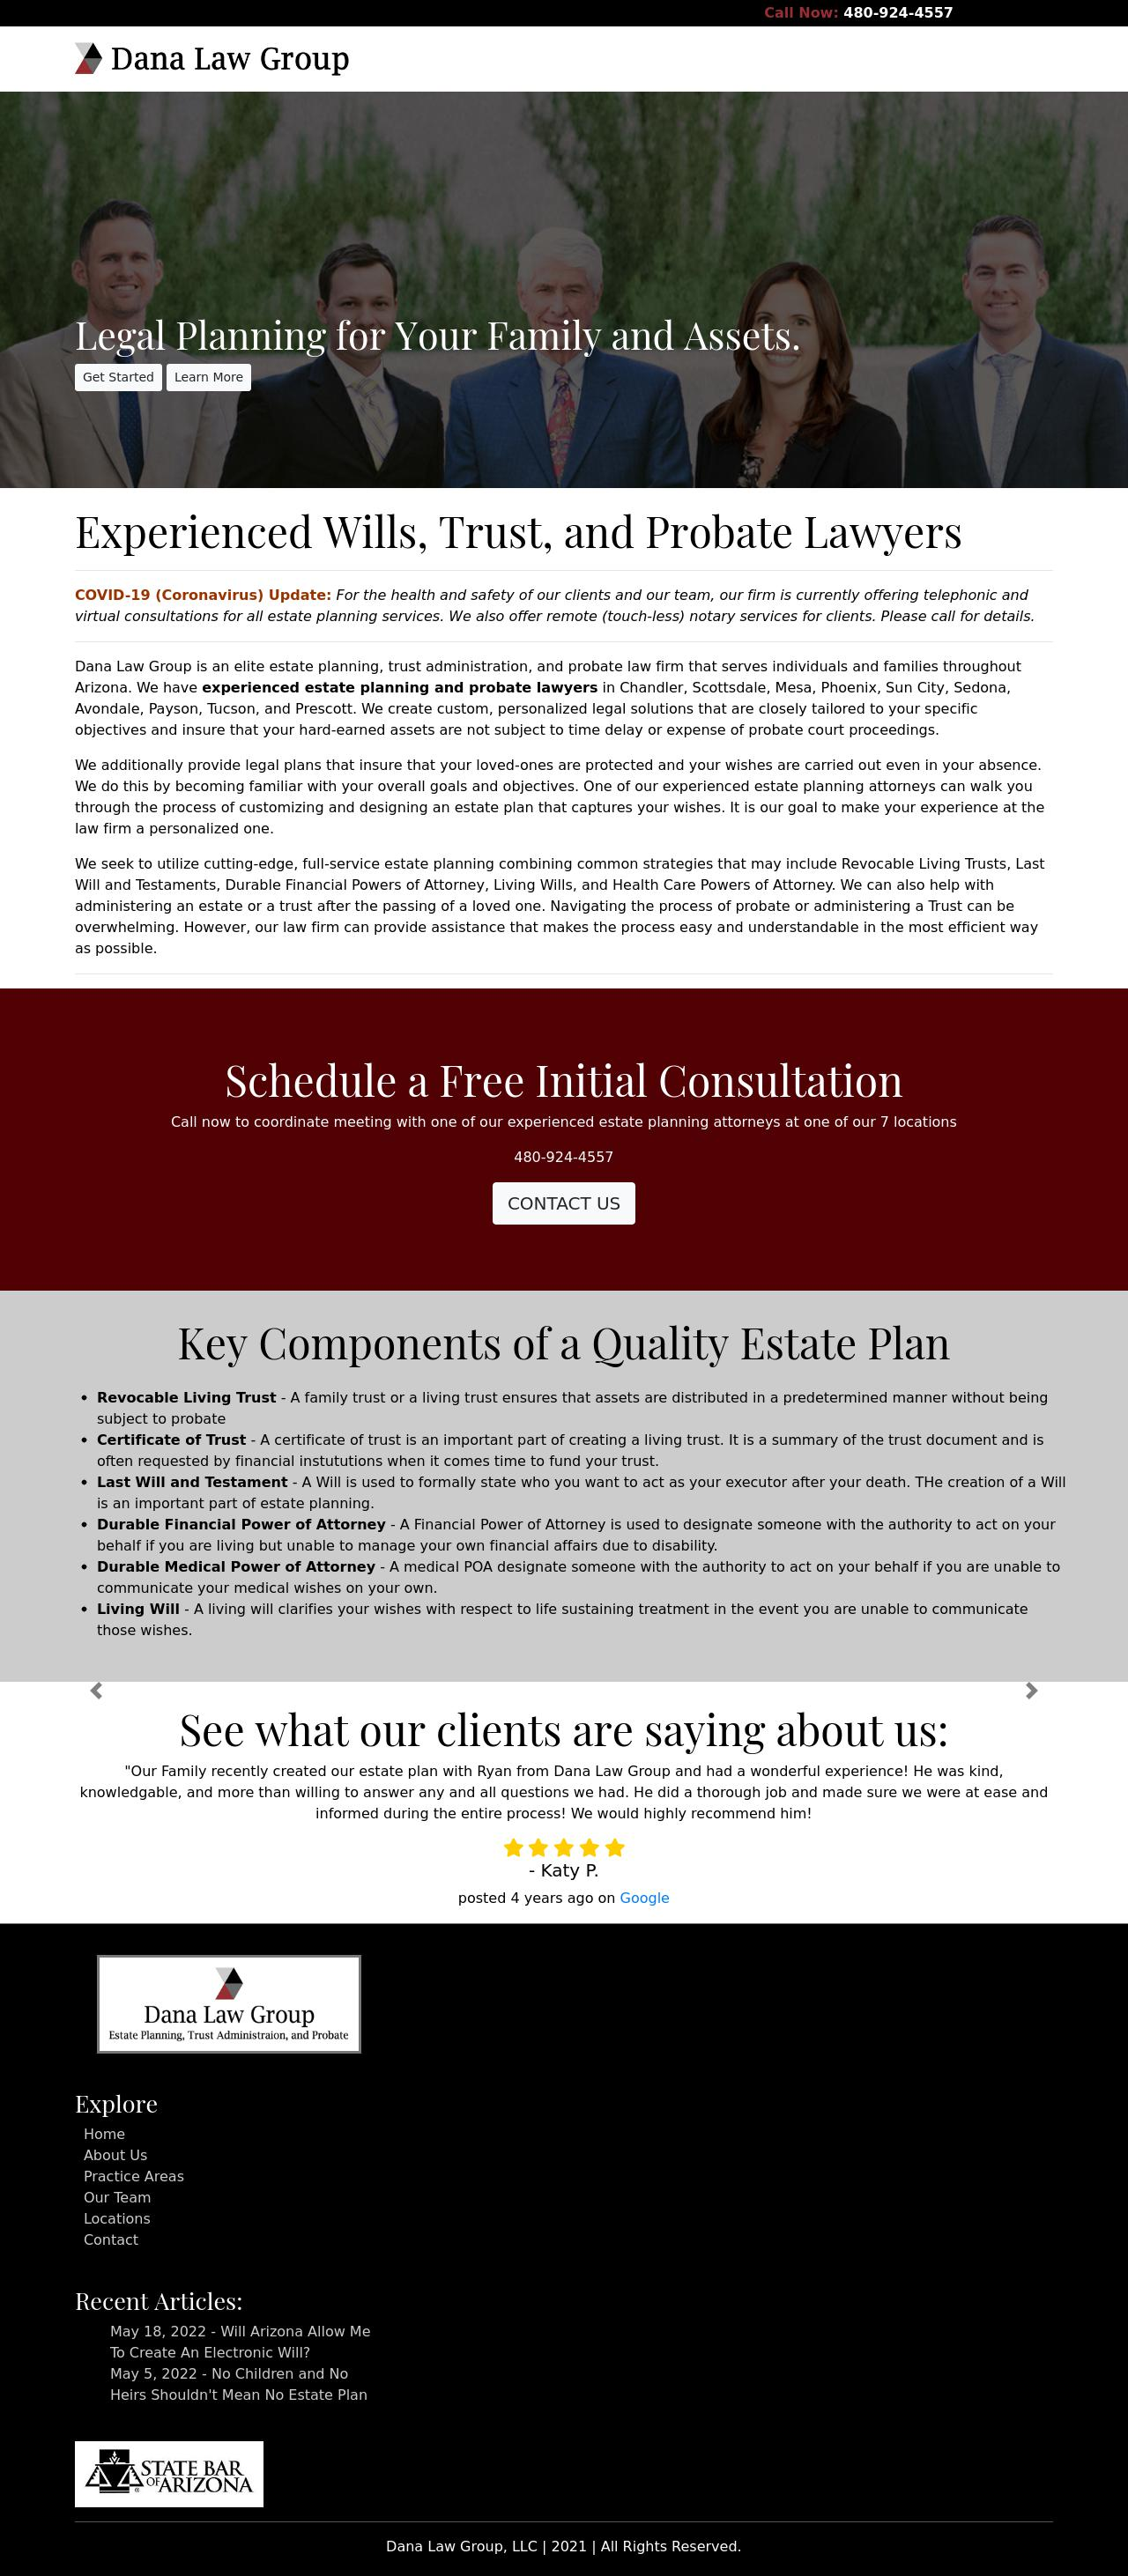 Dana Law Group, LLC - Scottsdale AZ Lawyers